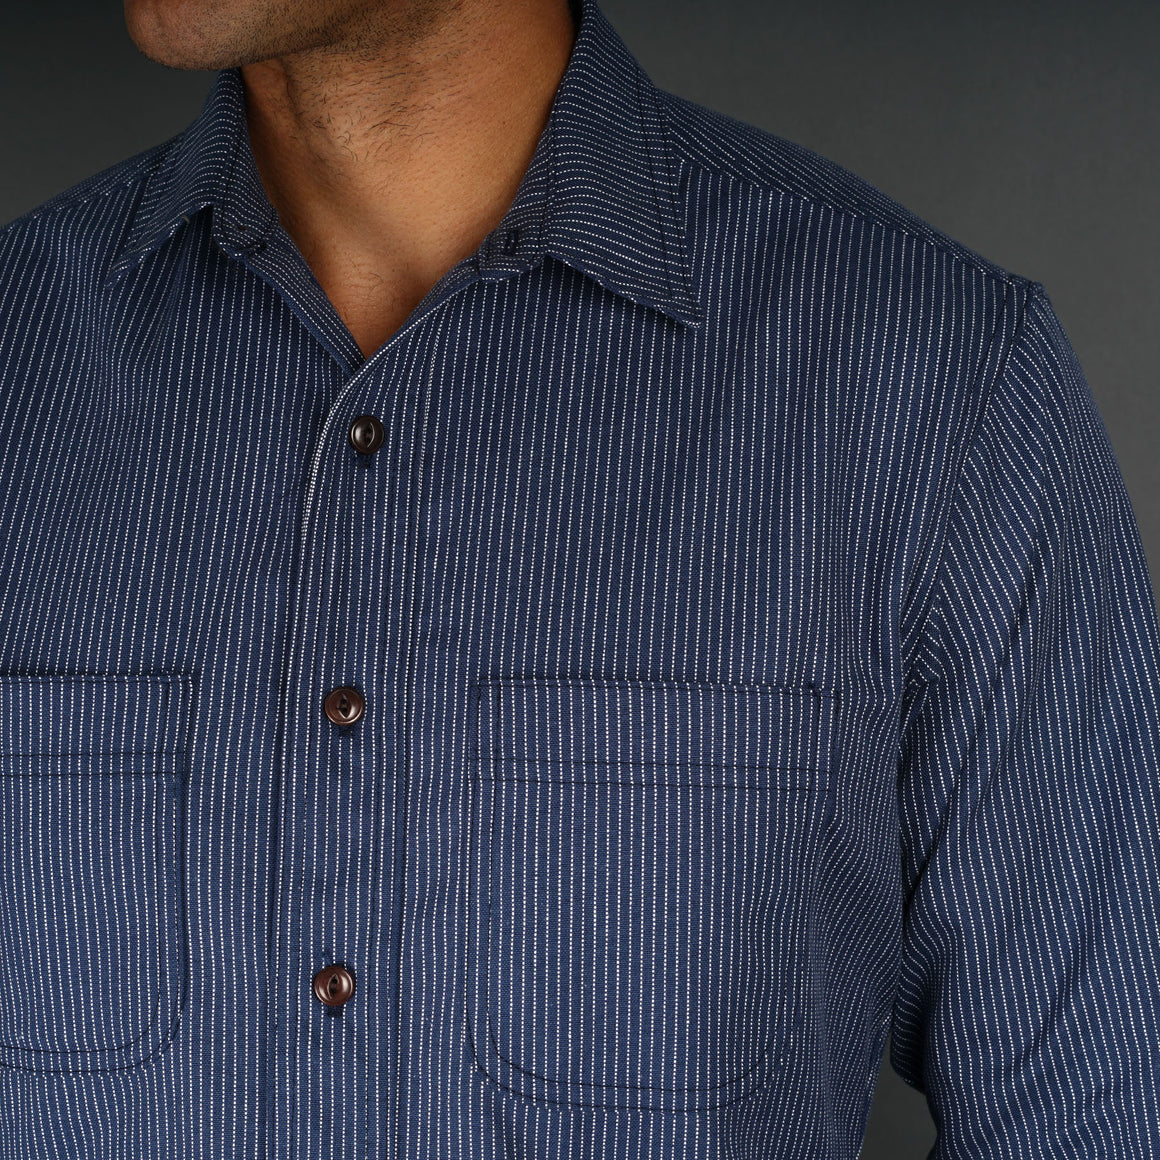 Chainstitch Shirt Indigo Railroad Stripe